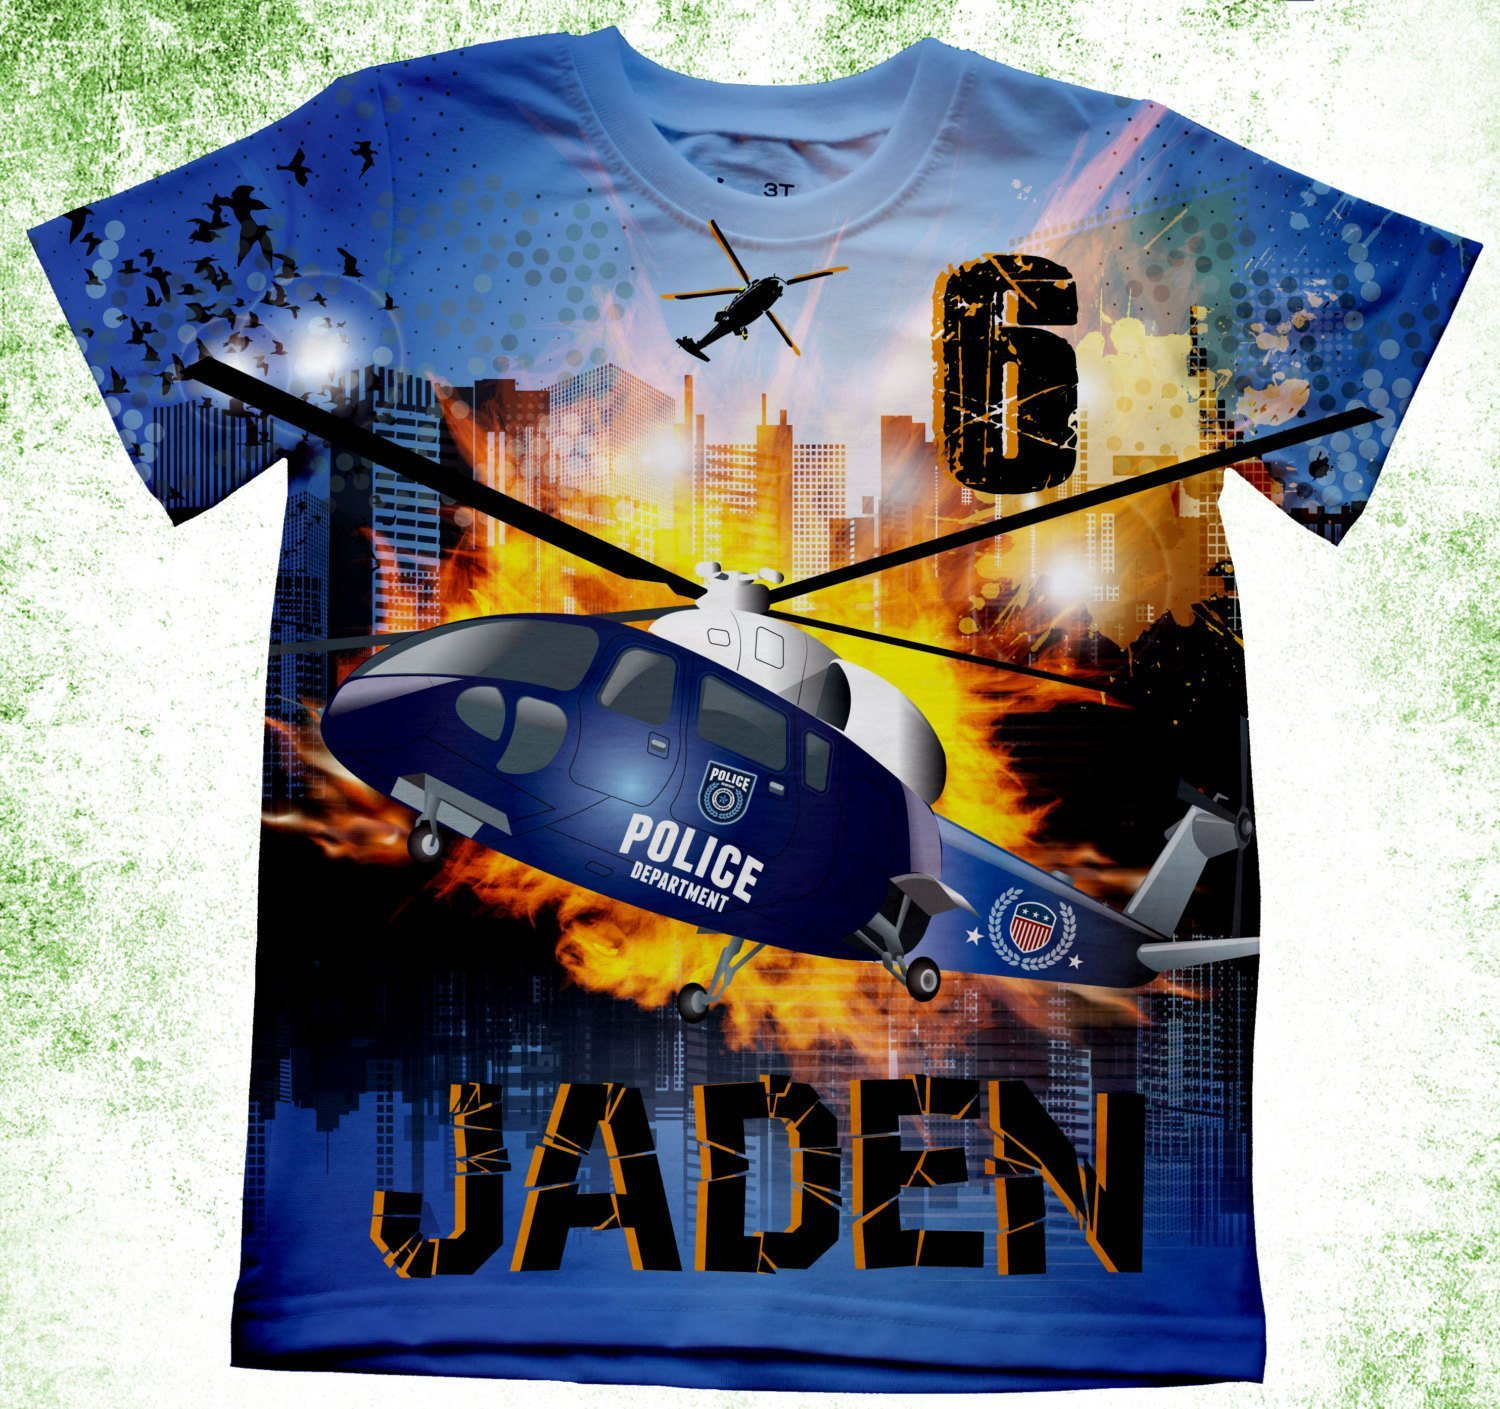 427f0bed6 Amazon.com: Personalized Police Helicopter T-Shirt, Police Birthday Shirt,  Birthday Party Kids T-shirts, Theme Birthday Shirt, Police Boys Bday TShirts:  ...